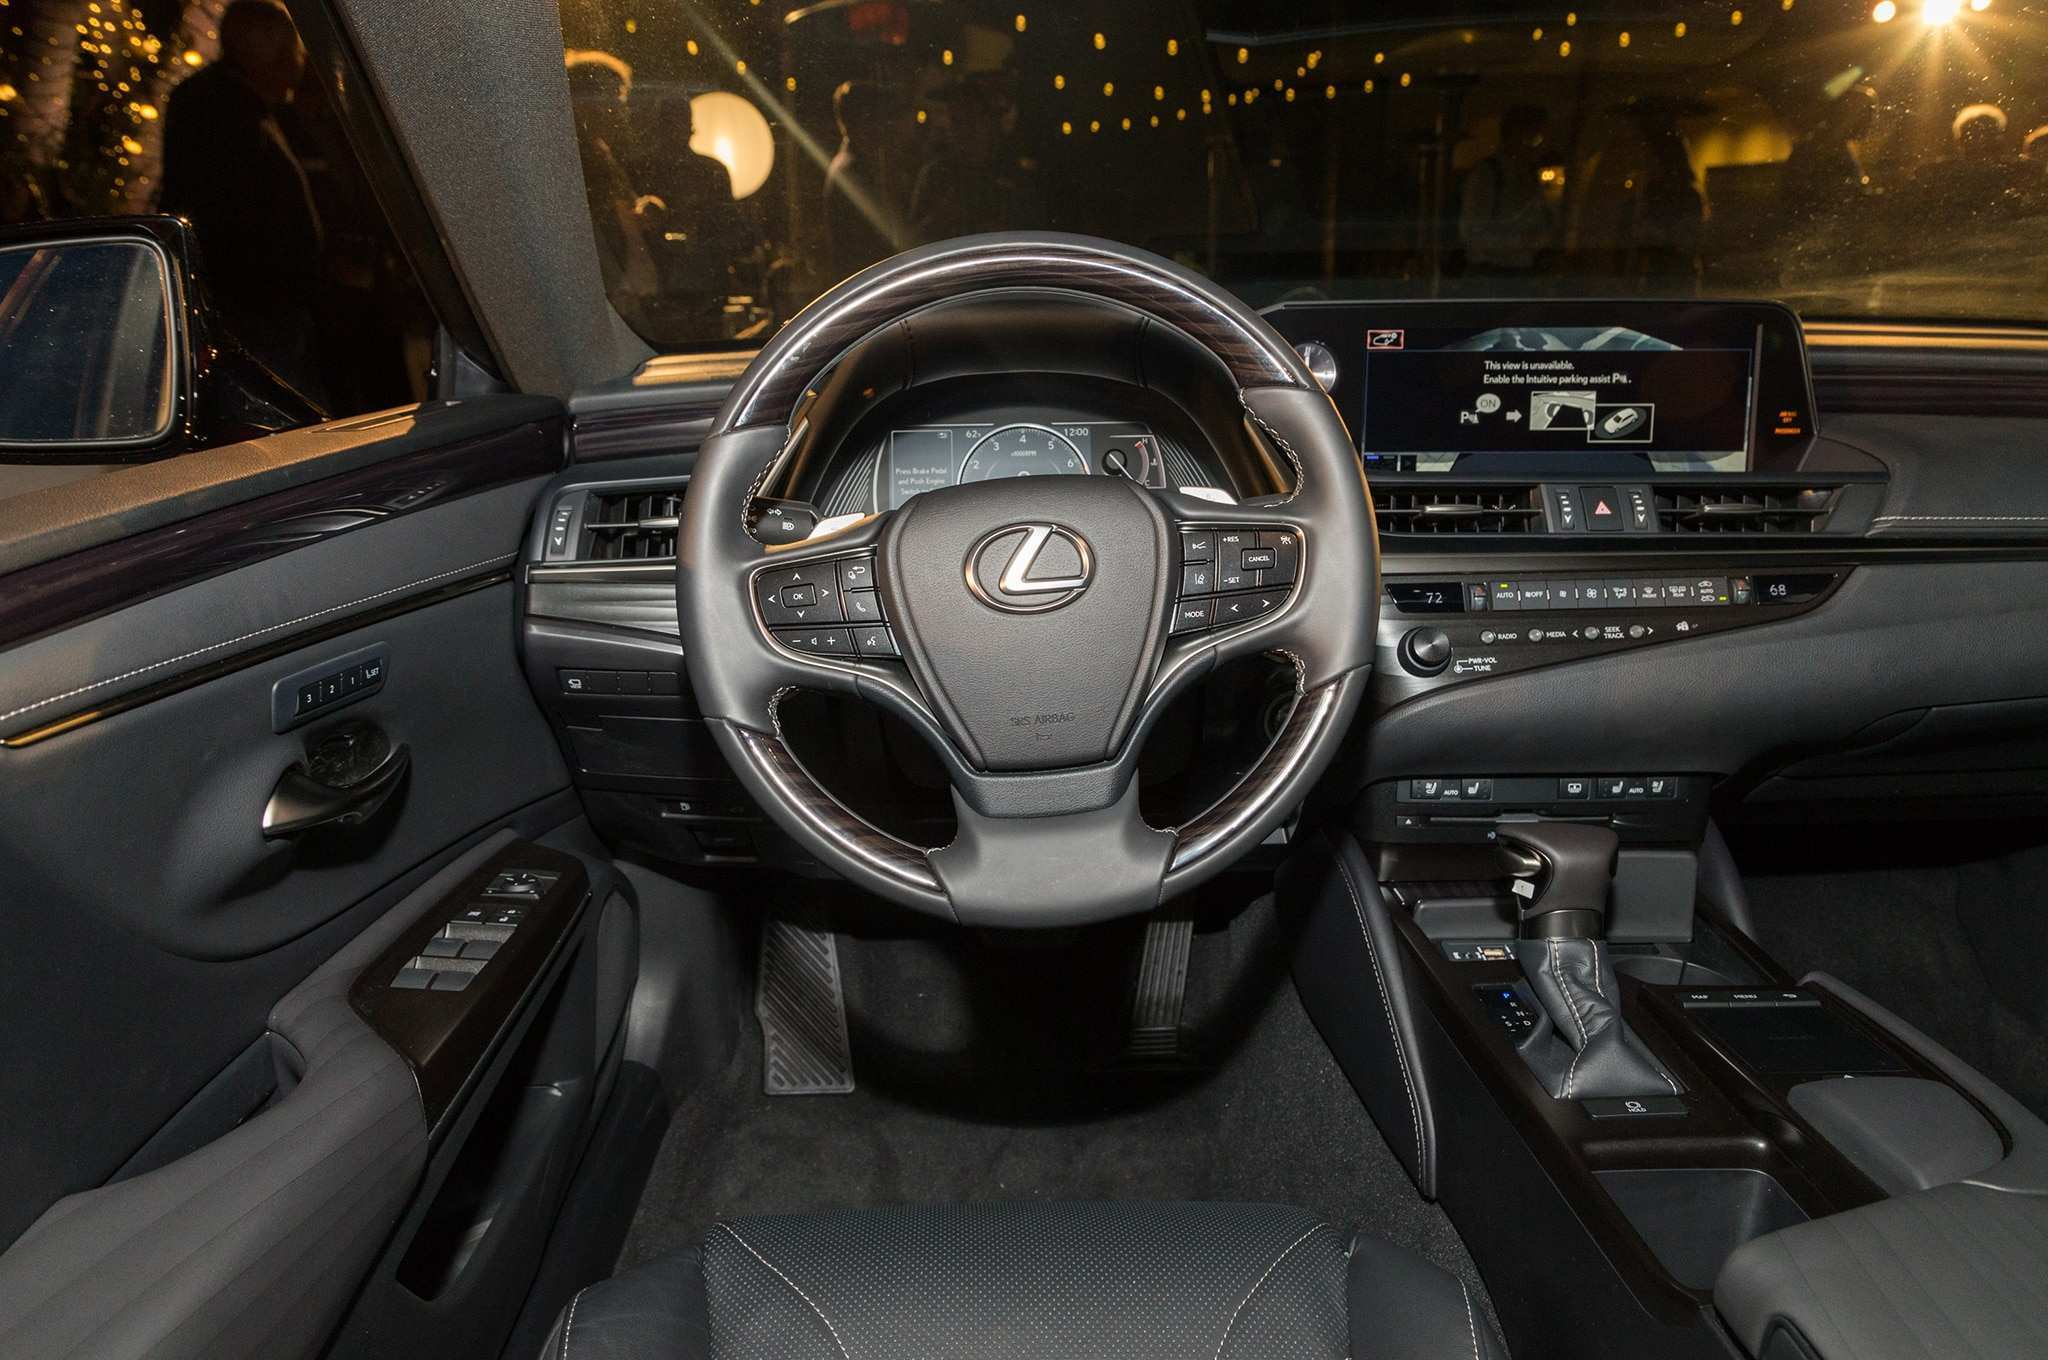 77 New 2019 Lexus Es Interior Redesign with 2019 Lexus Es Interior